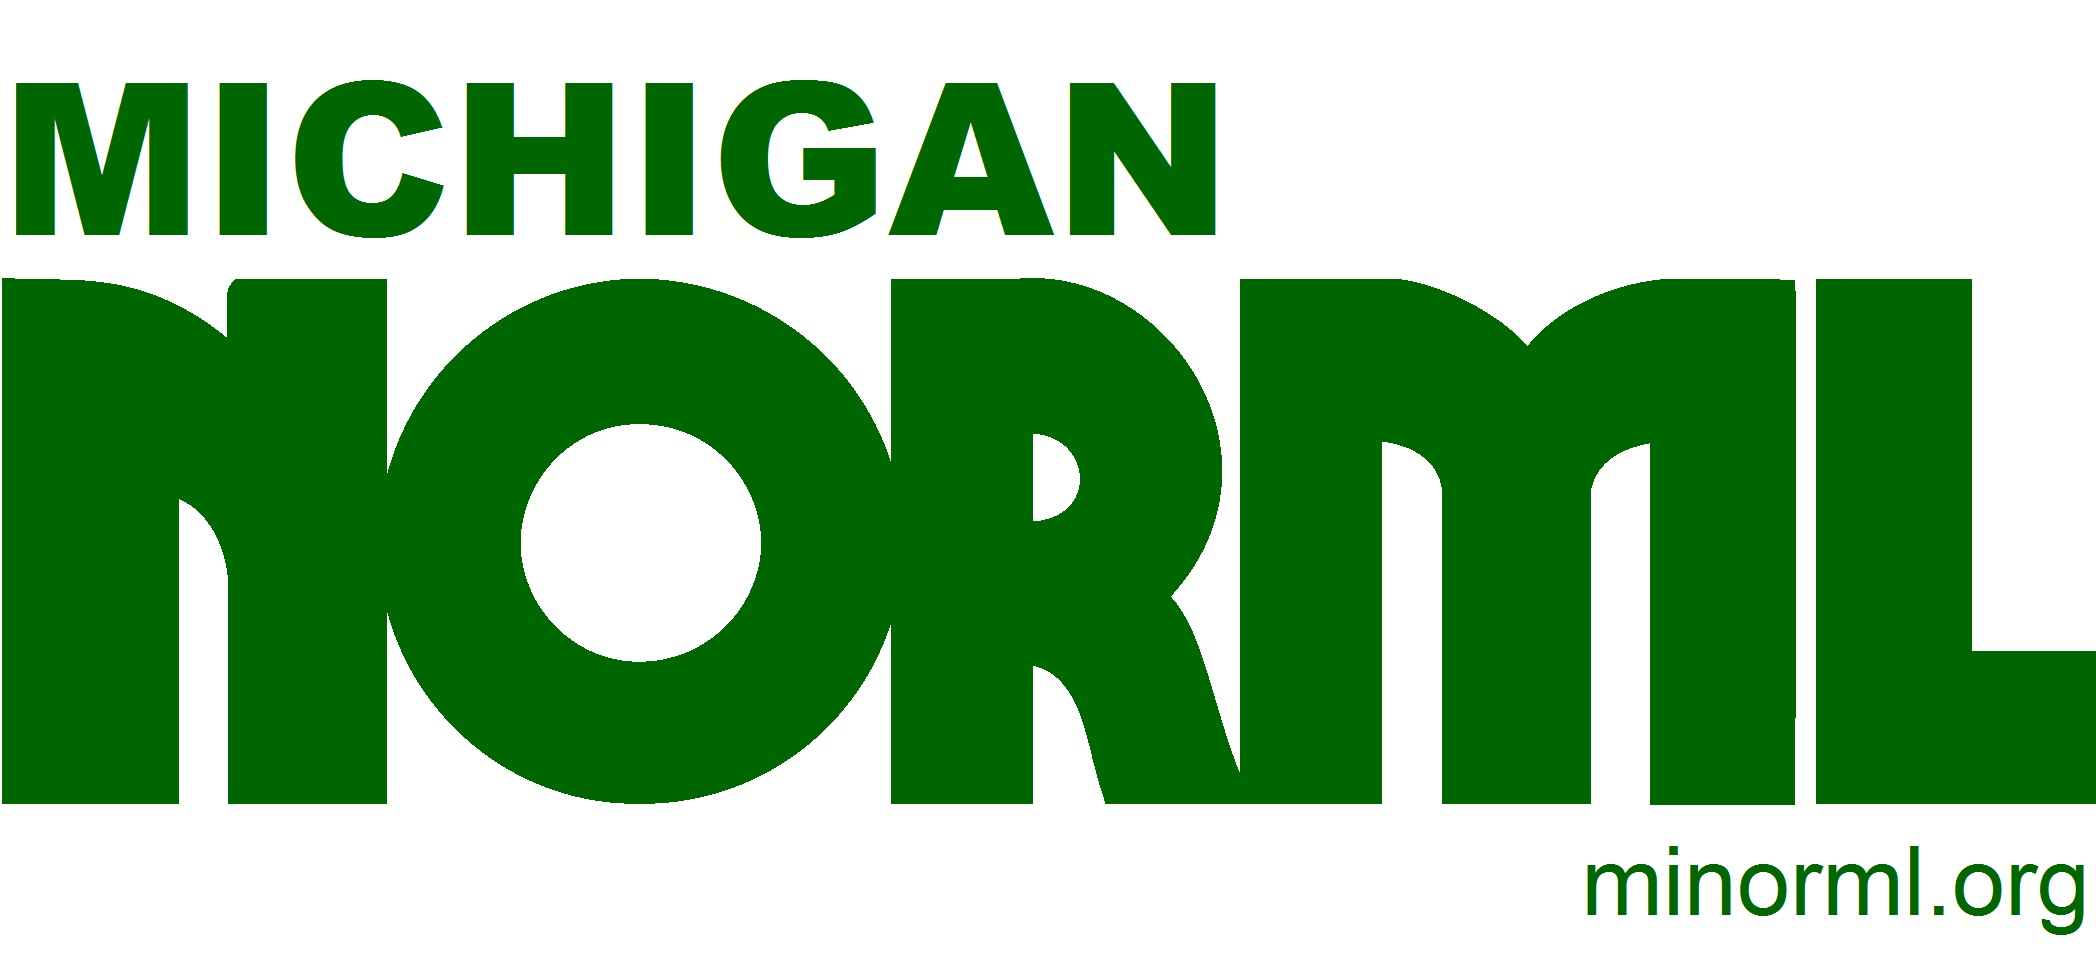 Michigan Norml logo